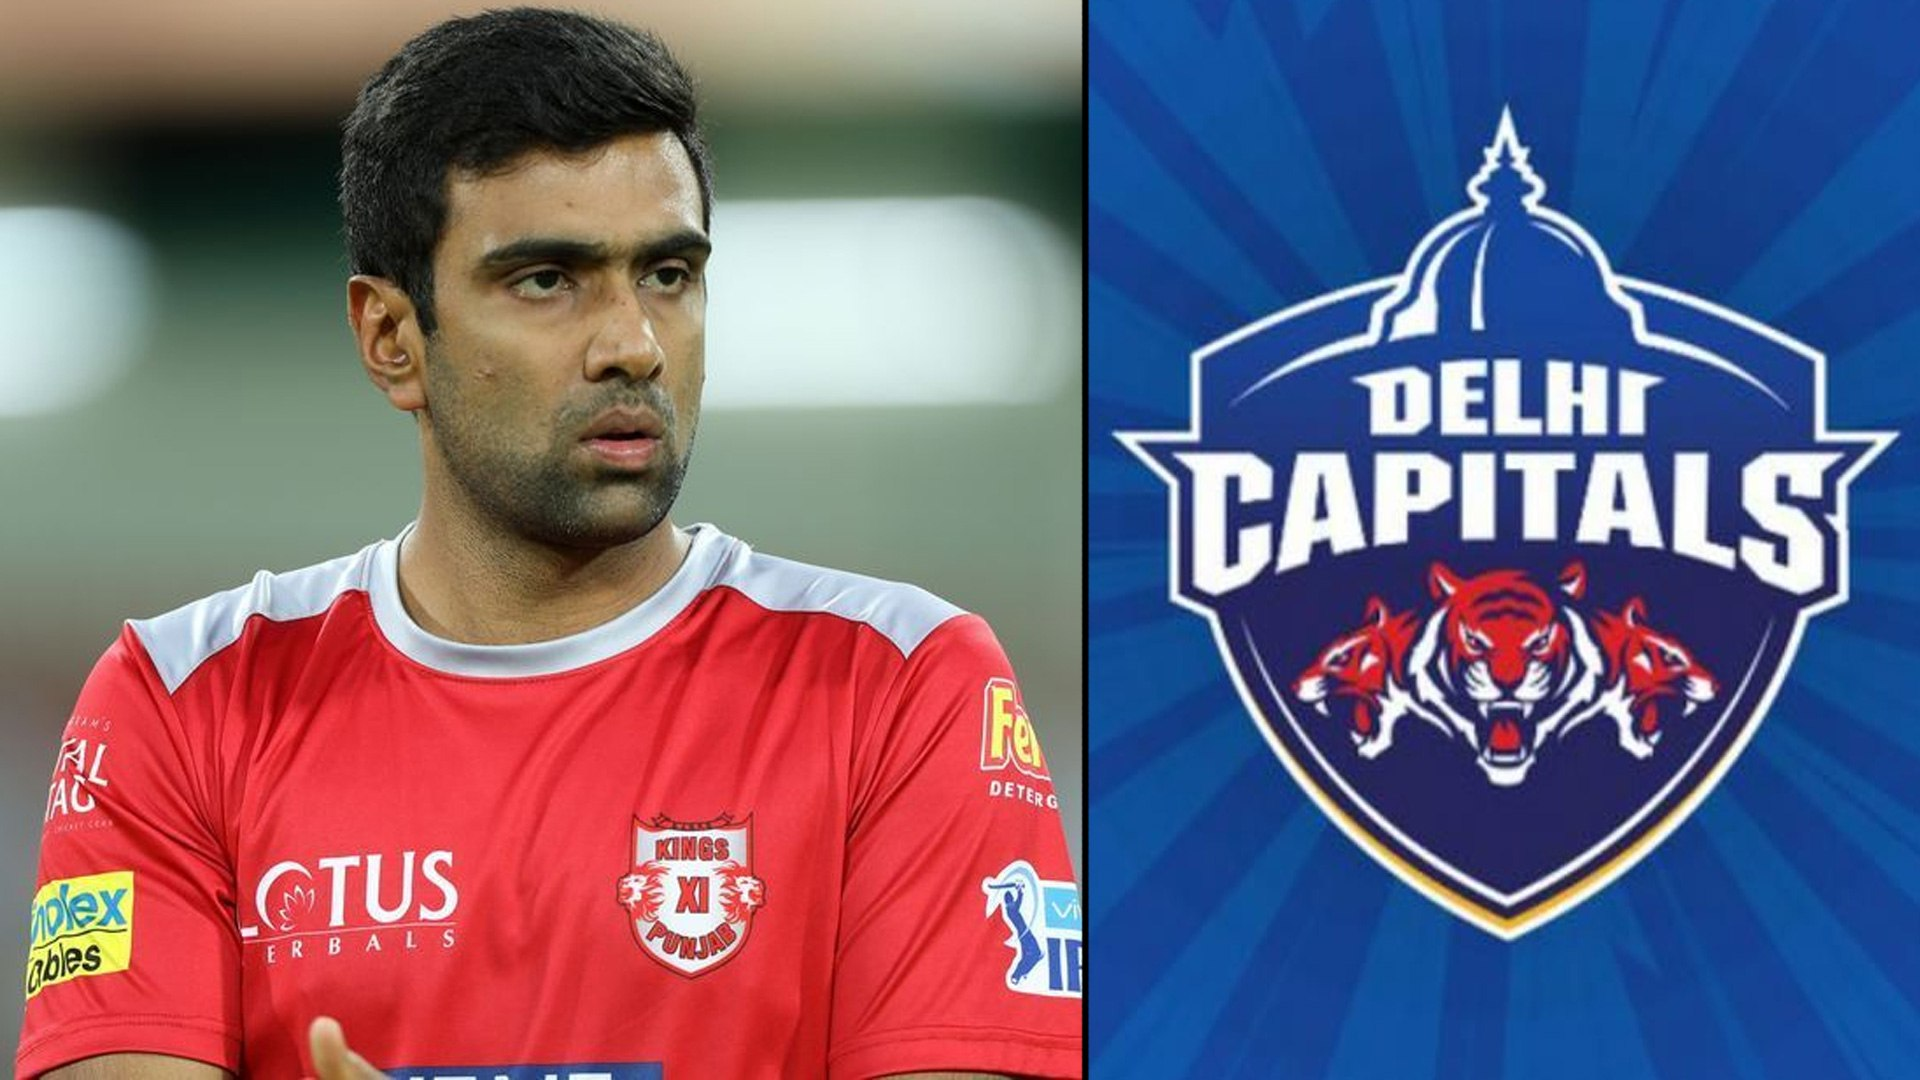 IPL 2020 : Ravichandran Ashwin Set To Join Delhi Capitals For IPL 2020 || Oneindia Telugu